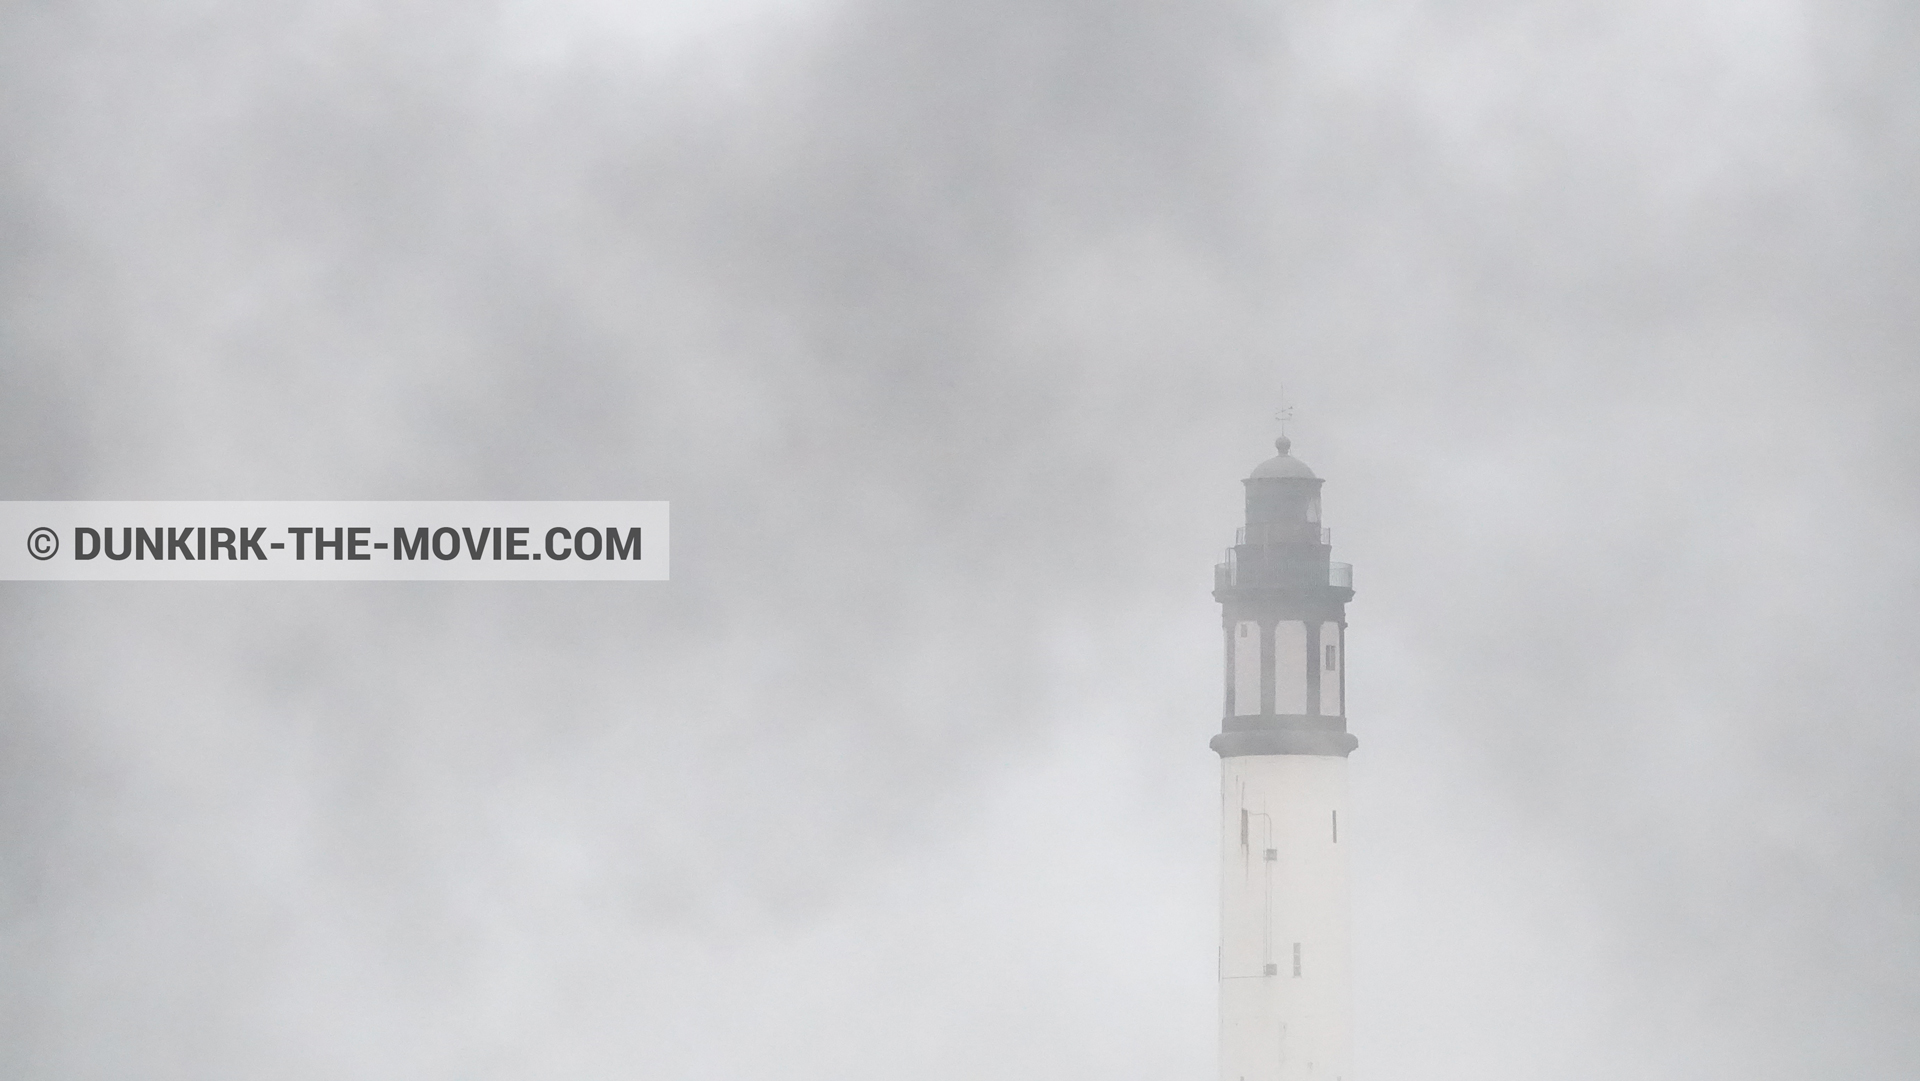 Picture with black smoke, Dunkirk lighthouse,  from behind the scene of the Dunkirk movie by Nolan